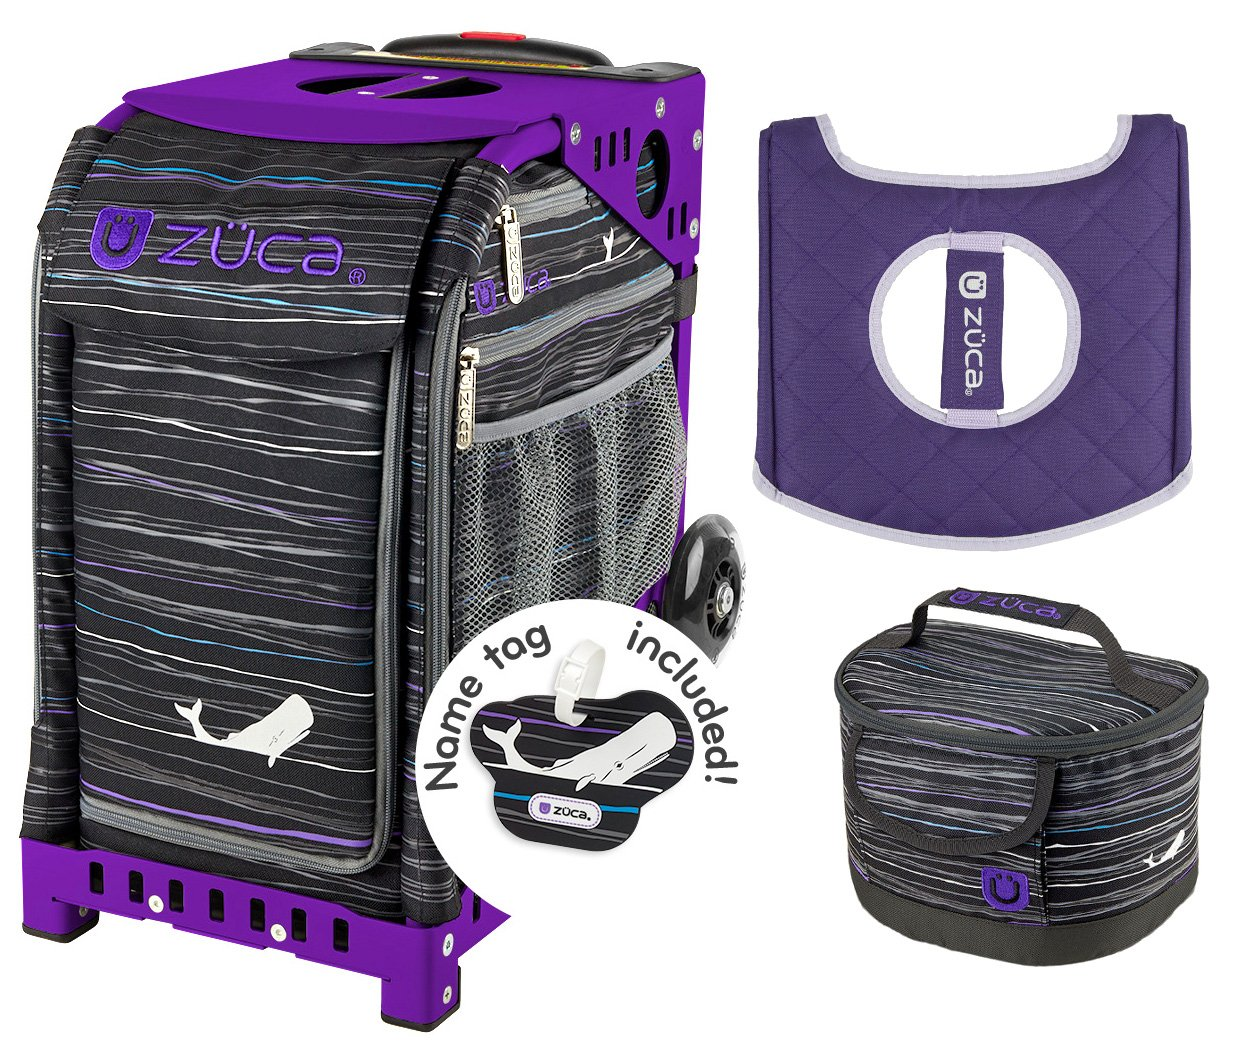 Zuca Sport Bag - Moby Dick with Gift Lunchbox and Seat Cover (Purple Frame)